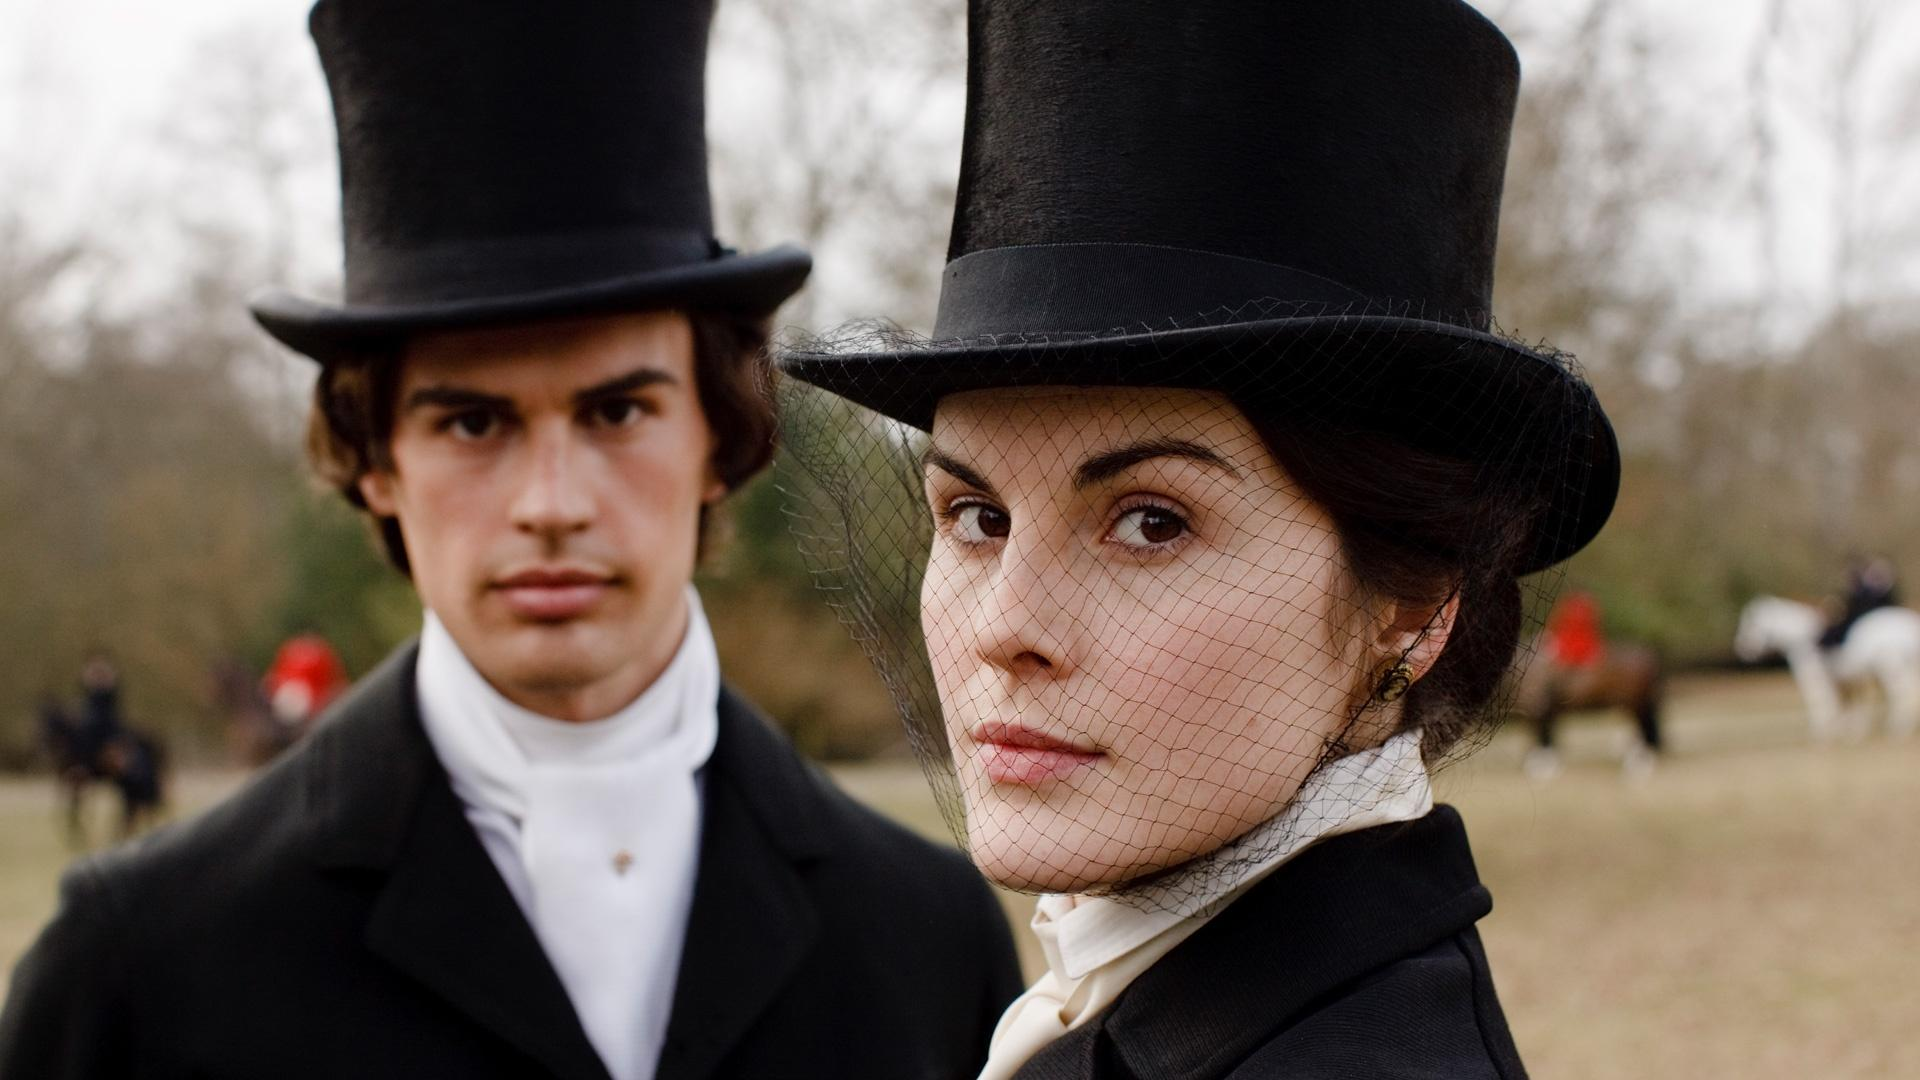 Mr. Pamuk and Lady Mary in Downton Abbey Season 1, Episode 3, before his unexpected death.